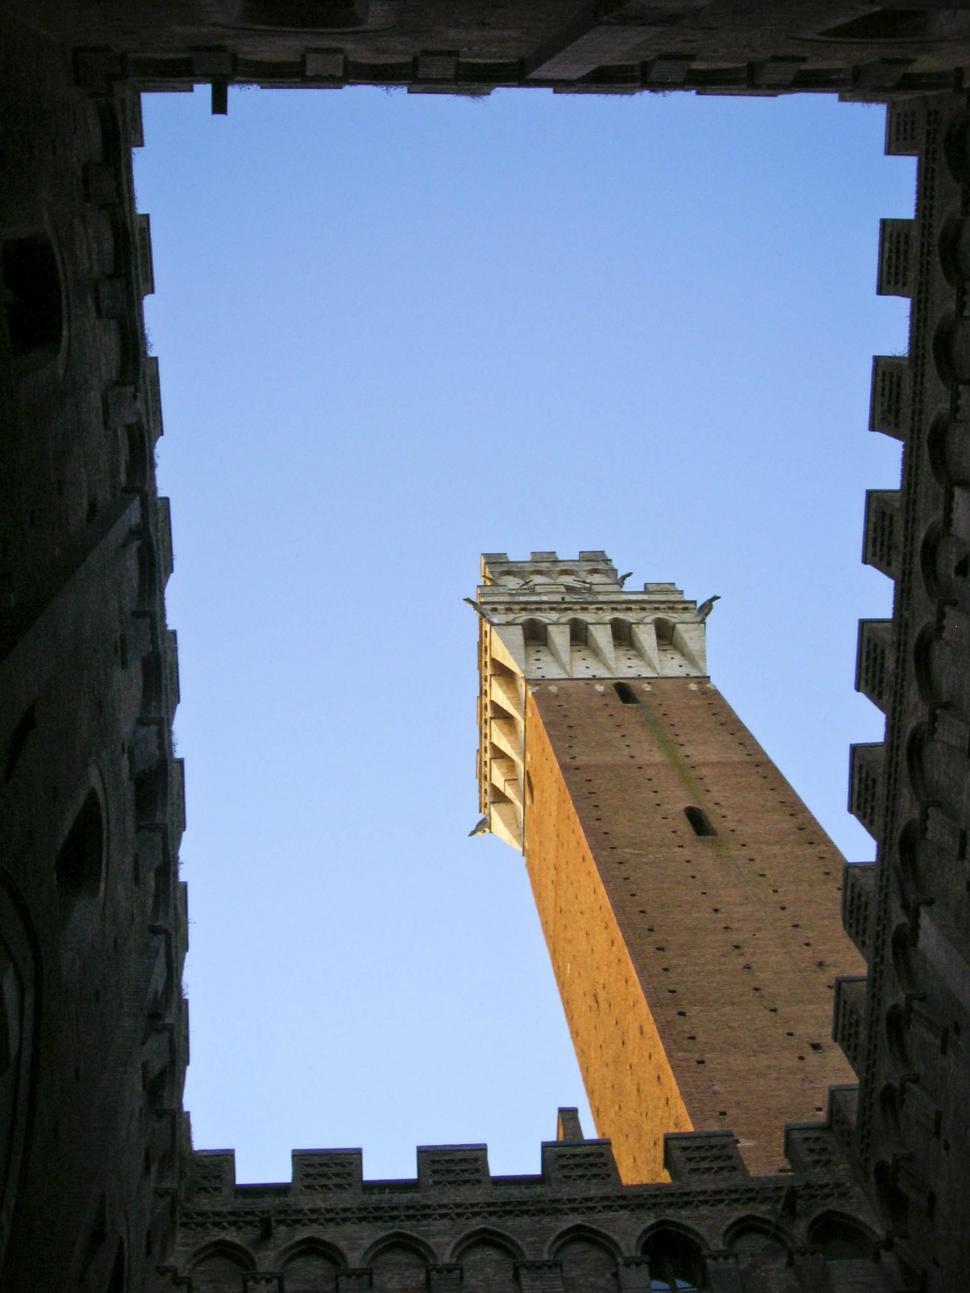 Download Free Stock HD Photo of Siena tower though opening Online